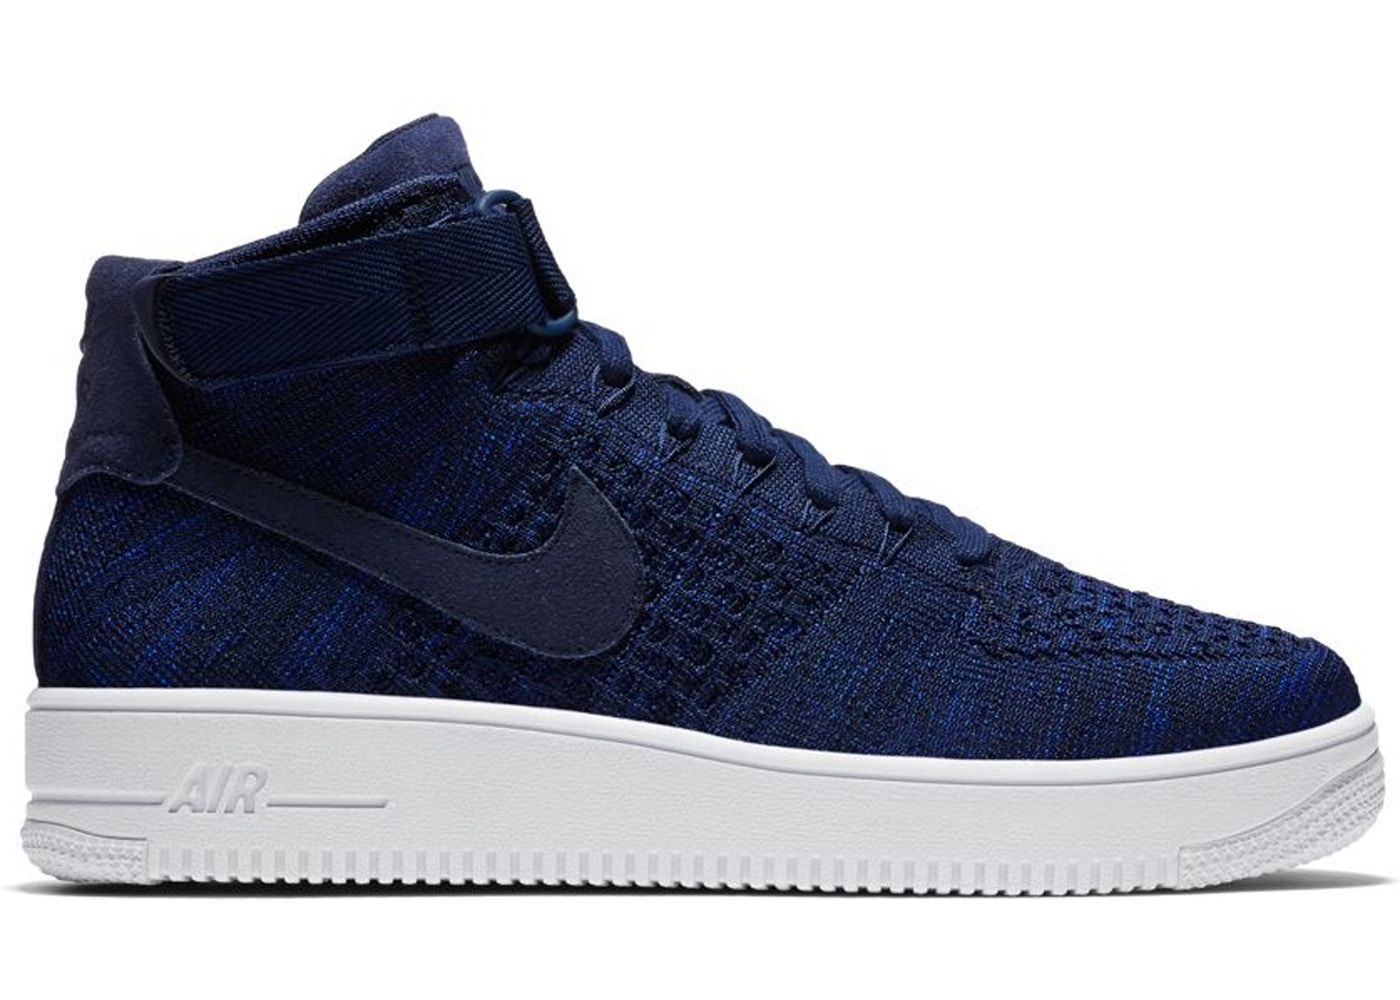 huge selection of 469d8 323b2 Air Force 1 Ultra Flyknit Mid College Navy